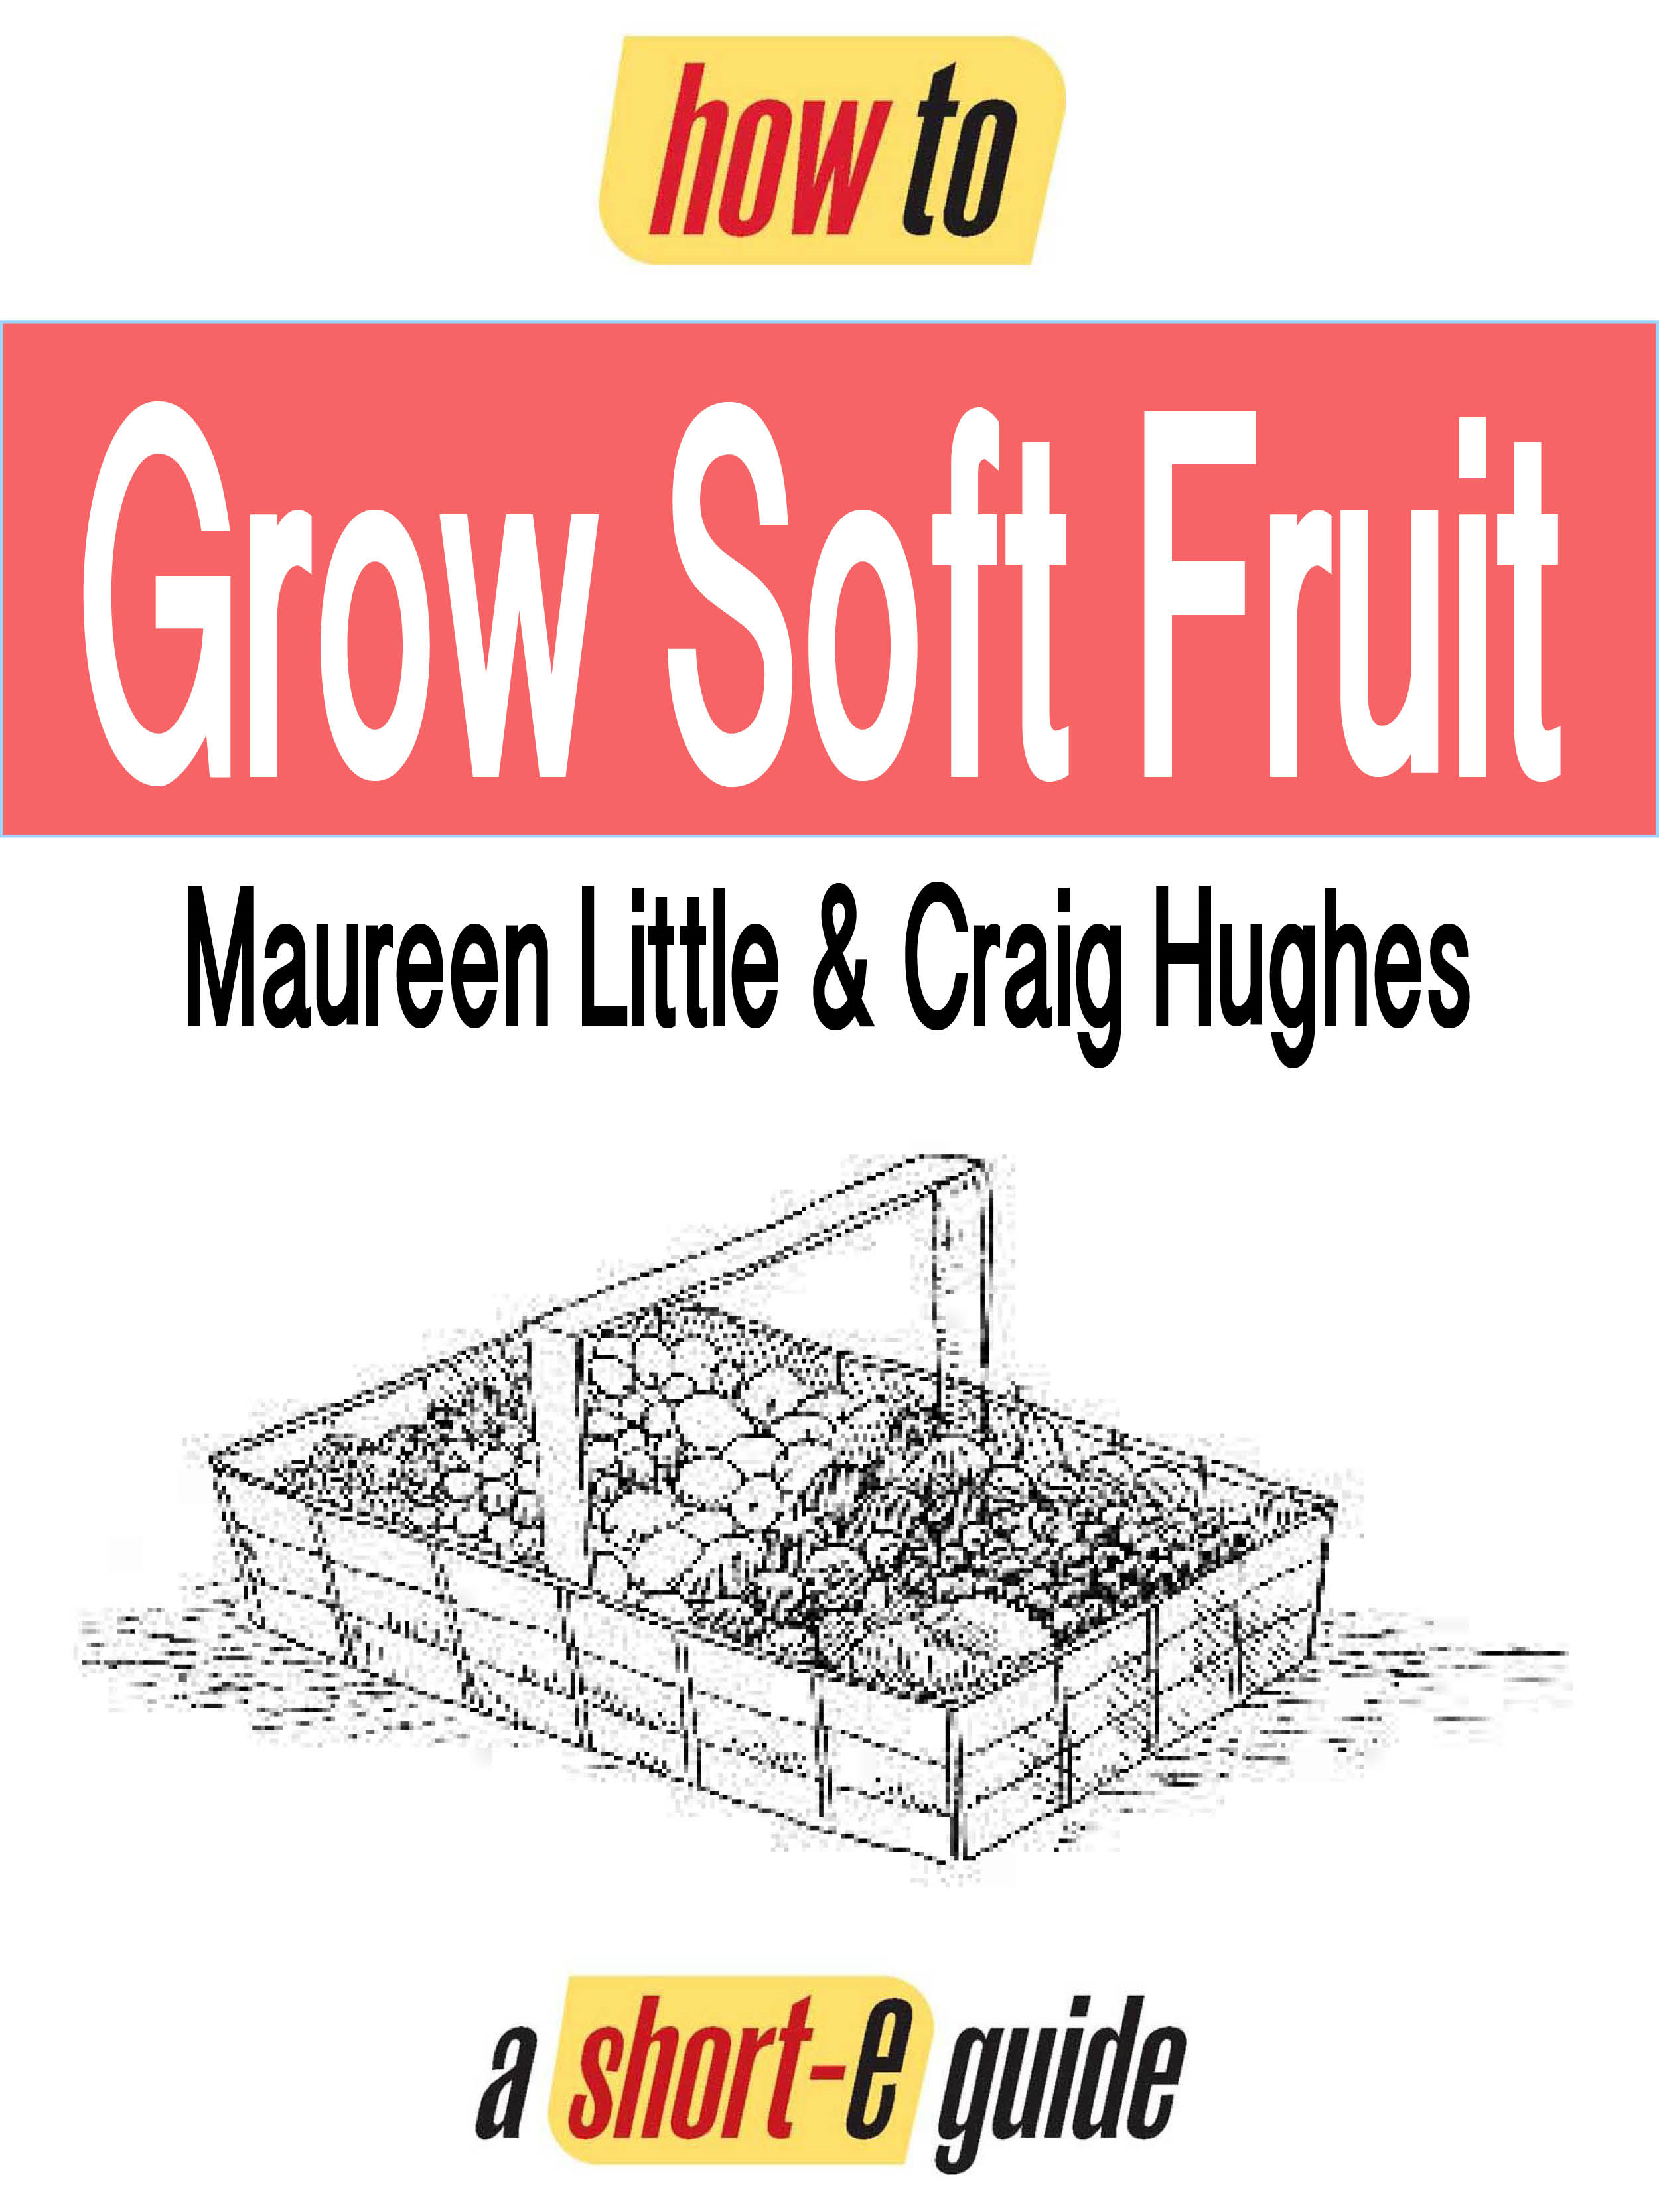 How to Grow Soft Fruit (Short-e Guide)